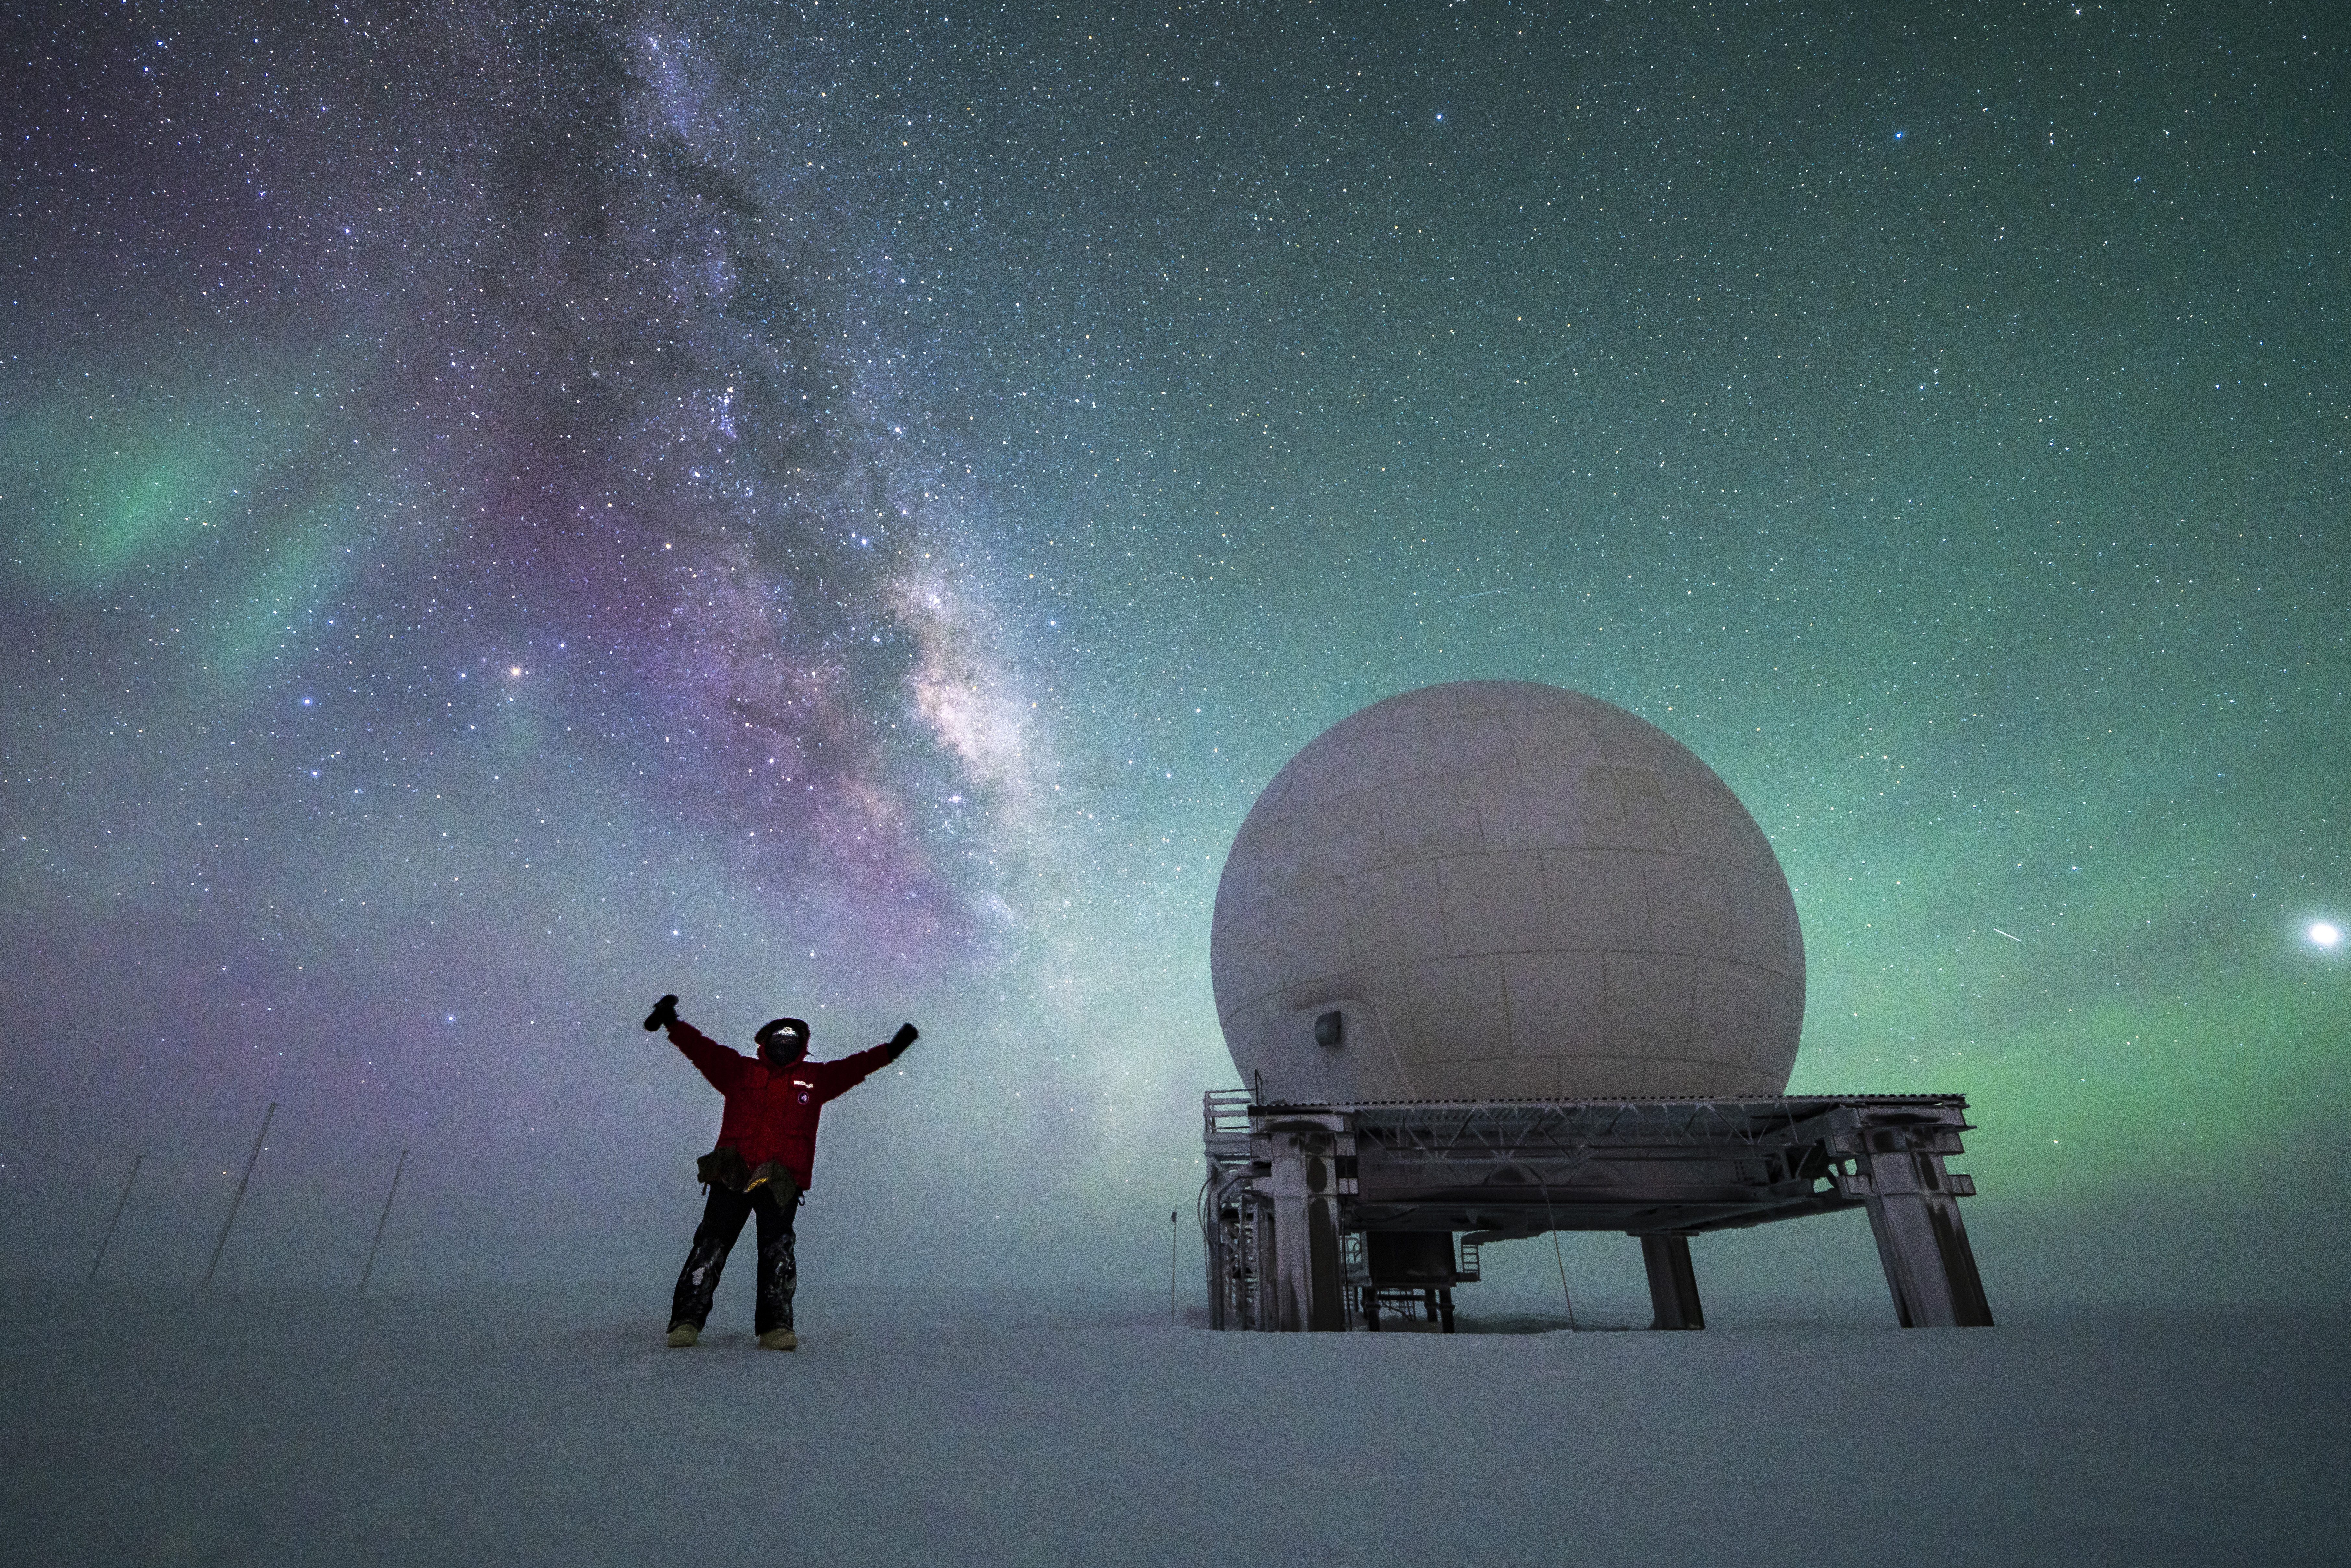 Sky full of auroras and Milky Way, person standing with arms up near a satellite dome.